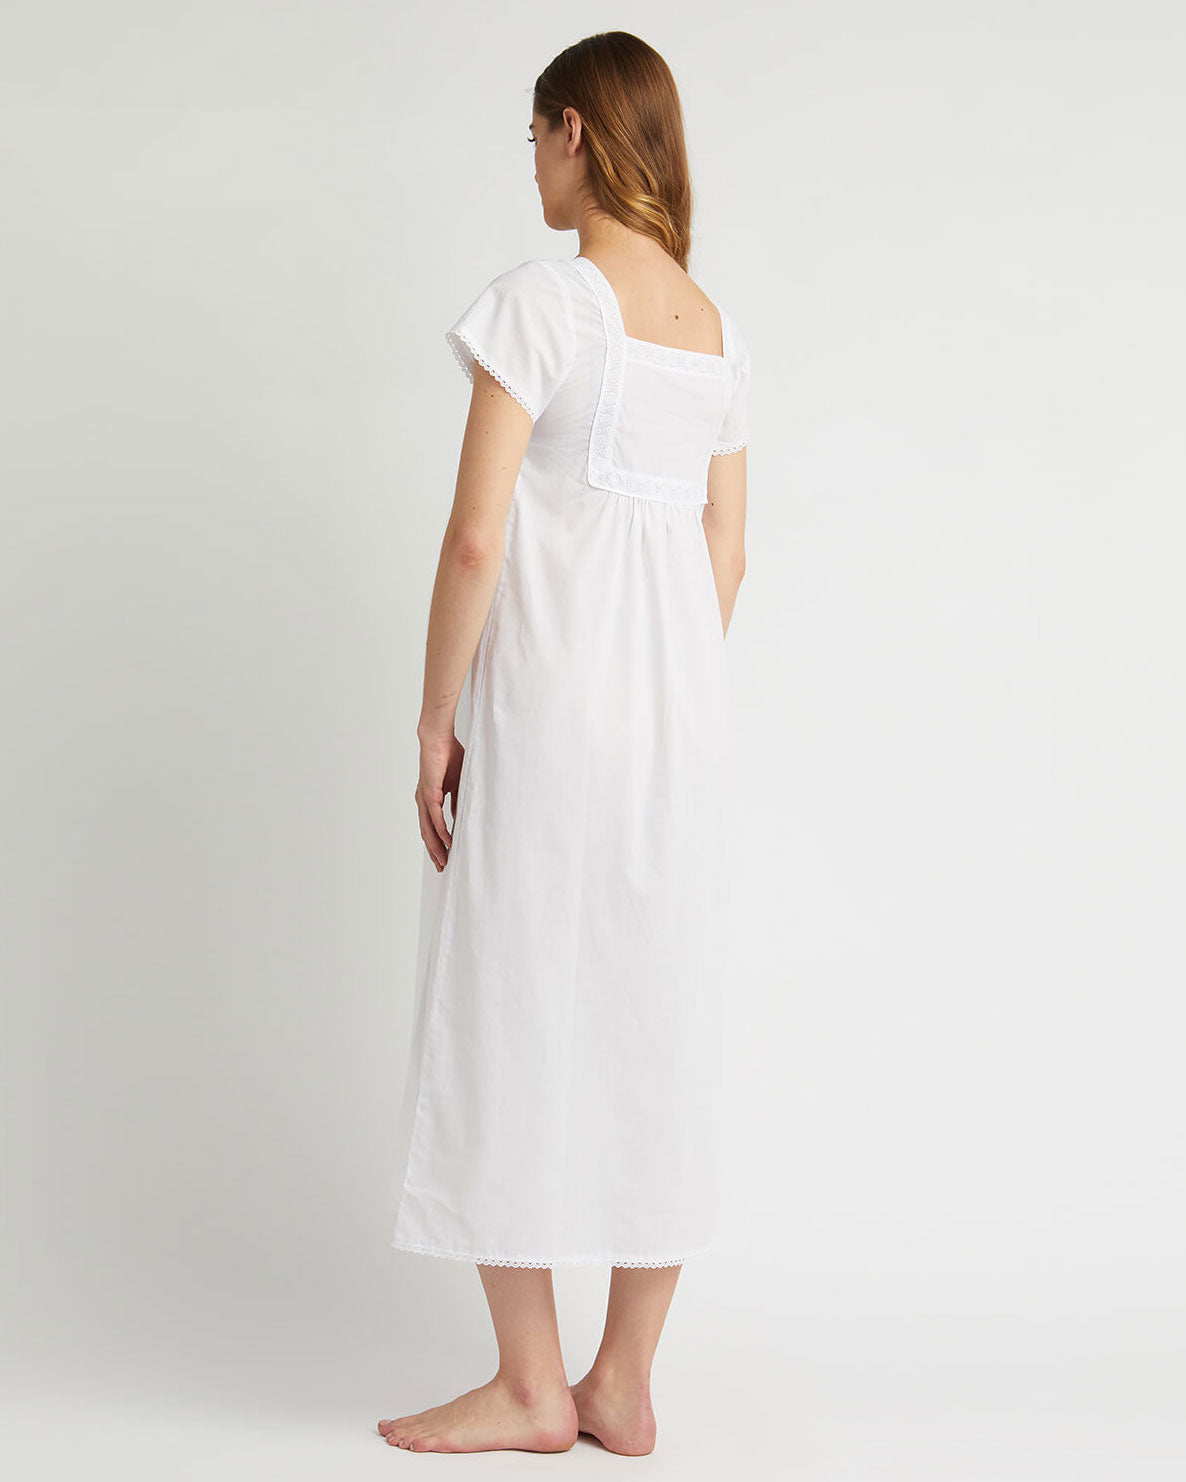 Women's Anna Cotton Nightdress - White